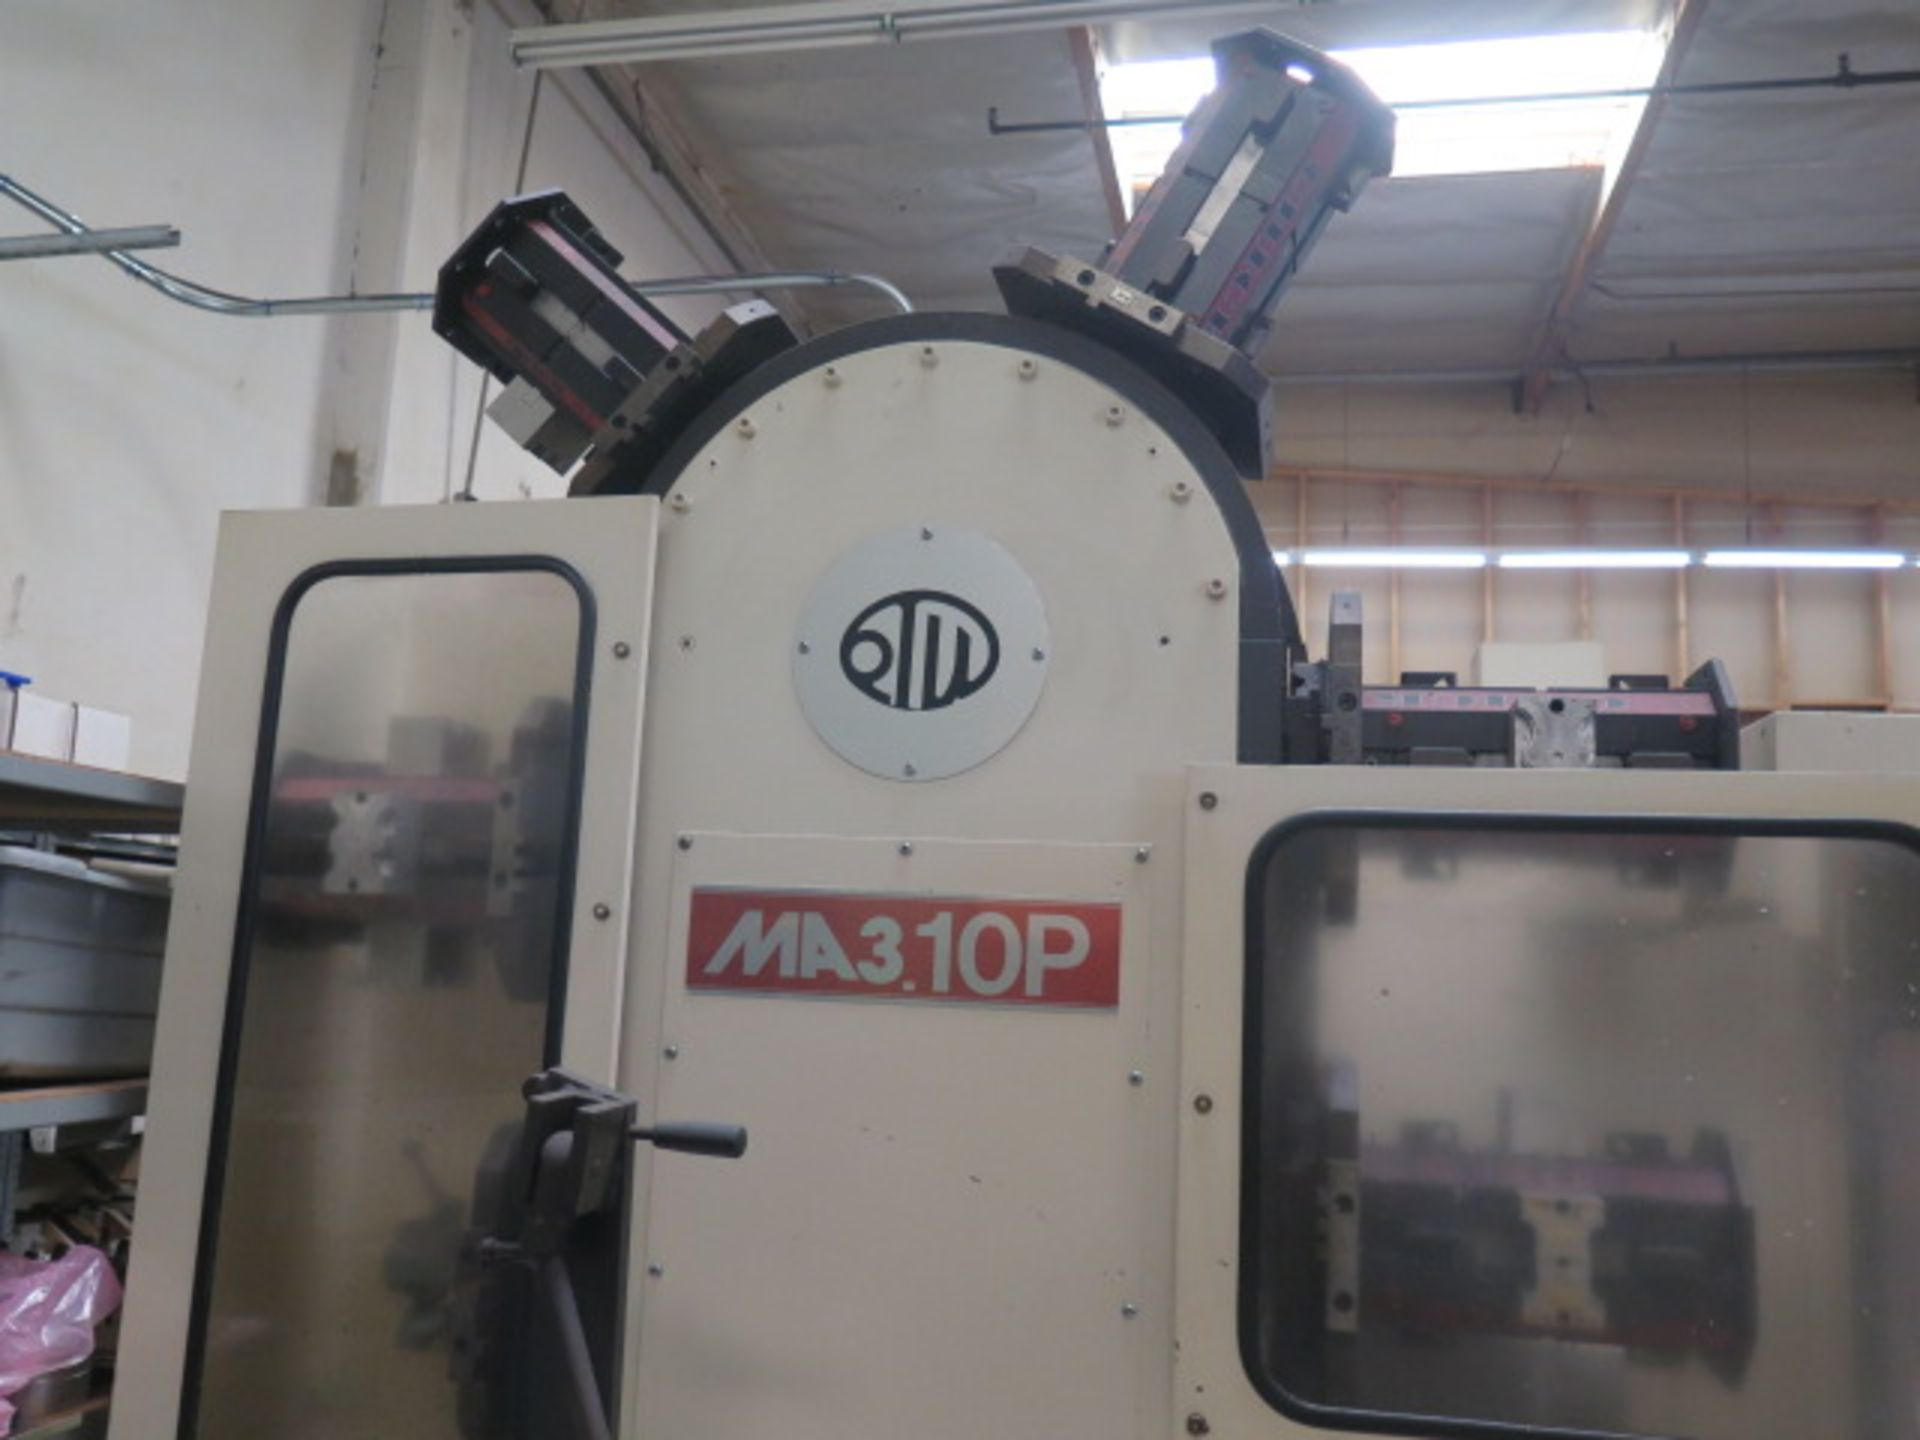 Tsugami MS3.10P Type MA3H 4-Axis 10-Pallet CNC HMC (HAS X-AXIS PROBLEM), SOLD AS IS - Image 11 of 20